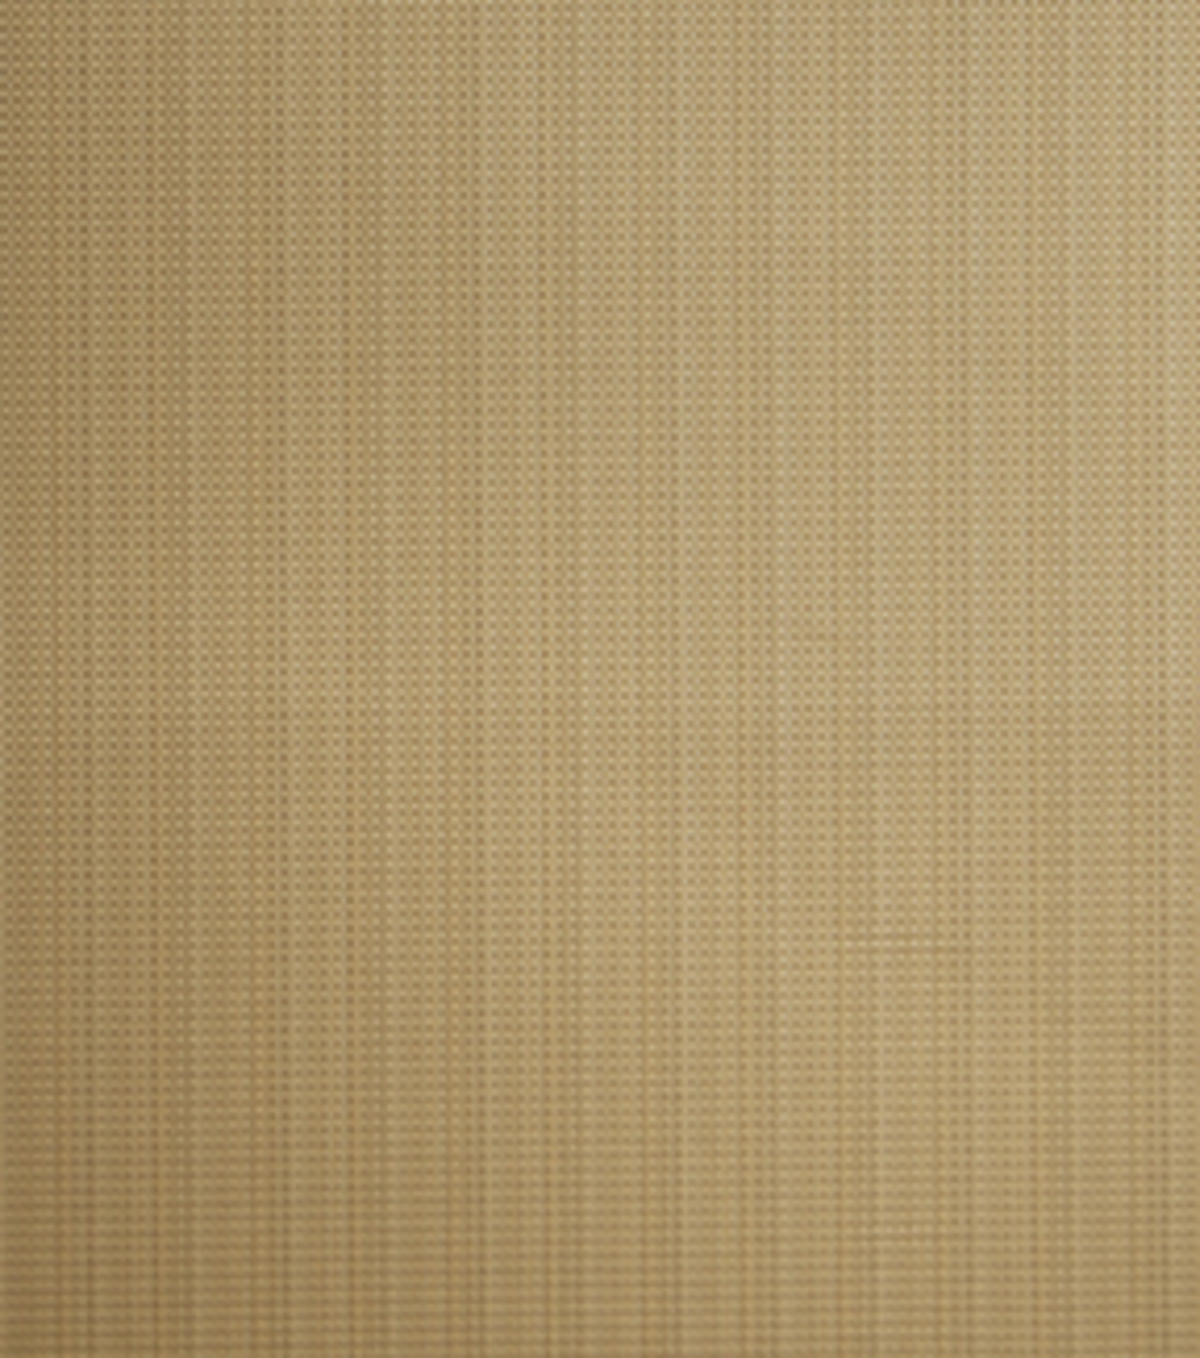 Home Decor 8\u0022x8\u0022 Fabric Swatch-Eaton Square City Dune